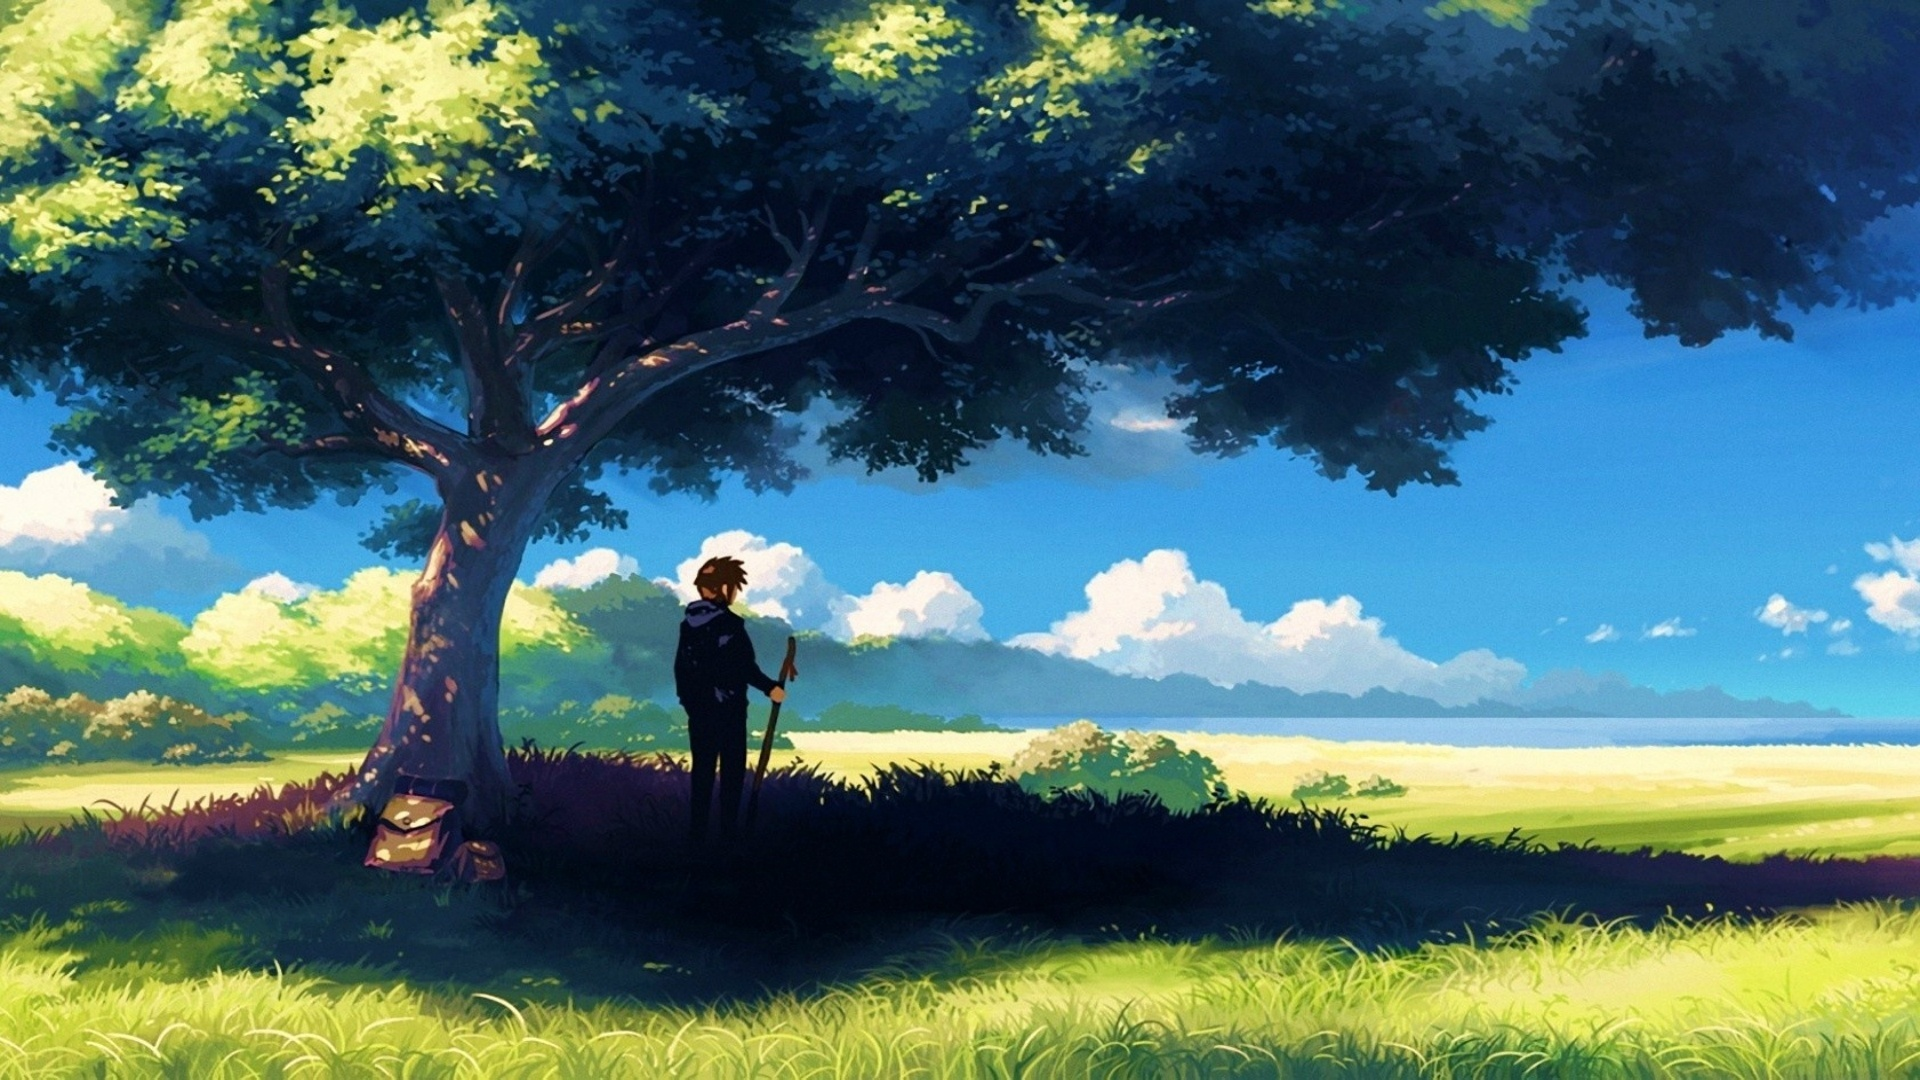 Chill Anime Backgrounds Posted By John Thompson